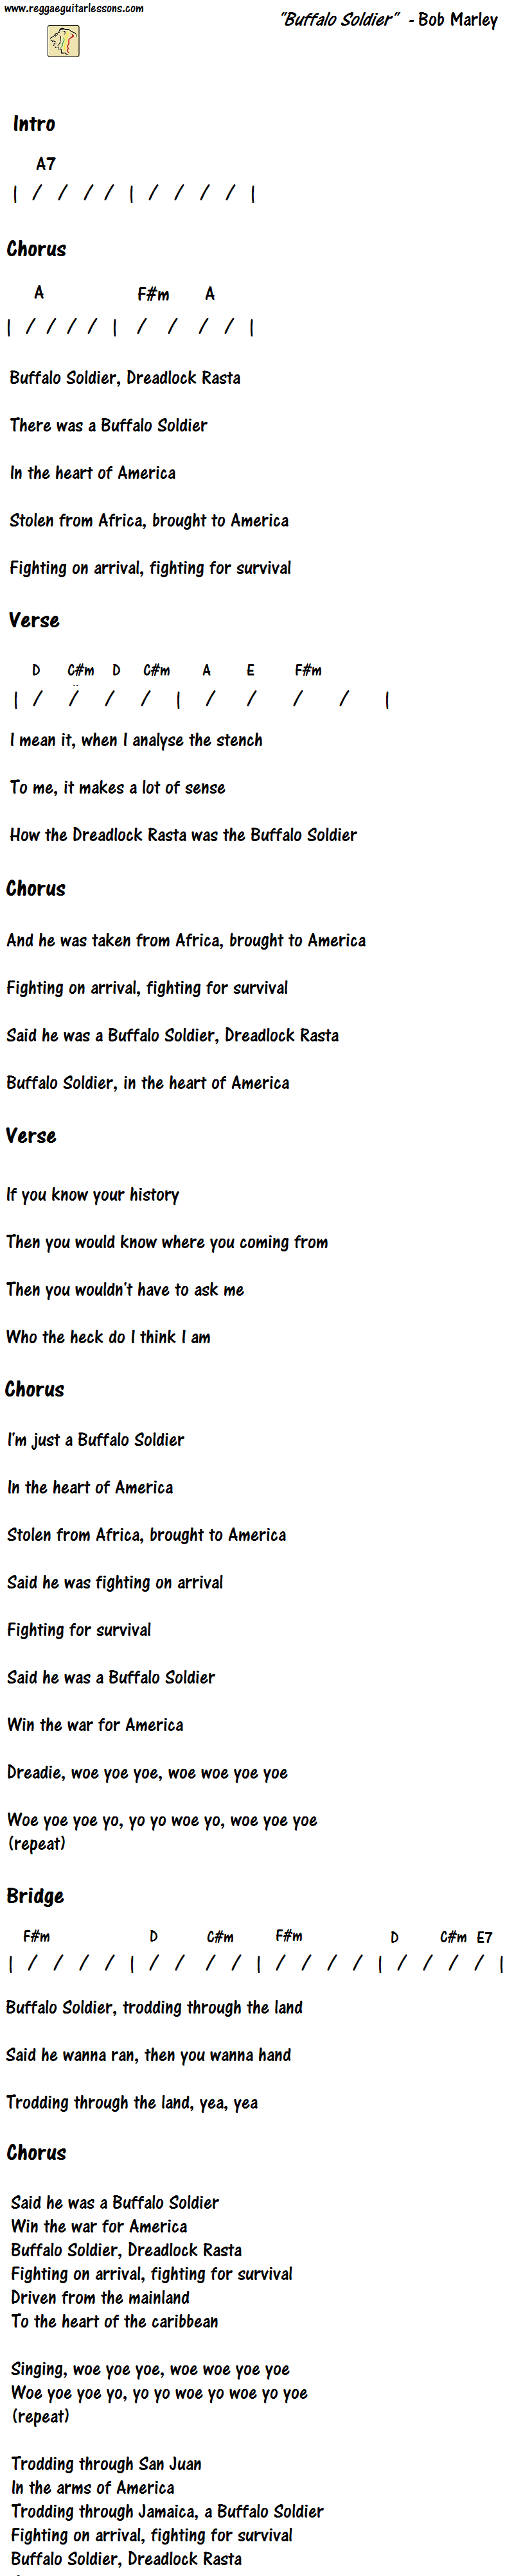 Buffalo soldier by bob marley lyrics